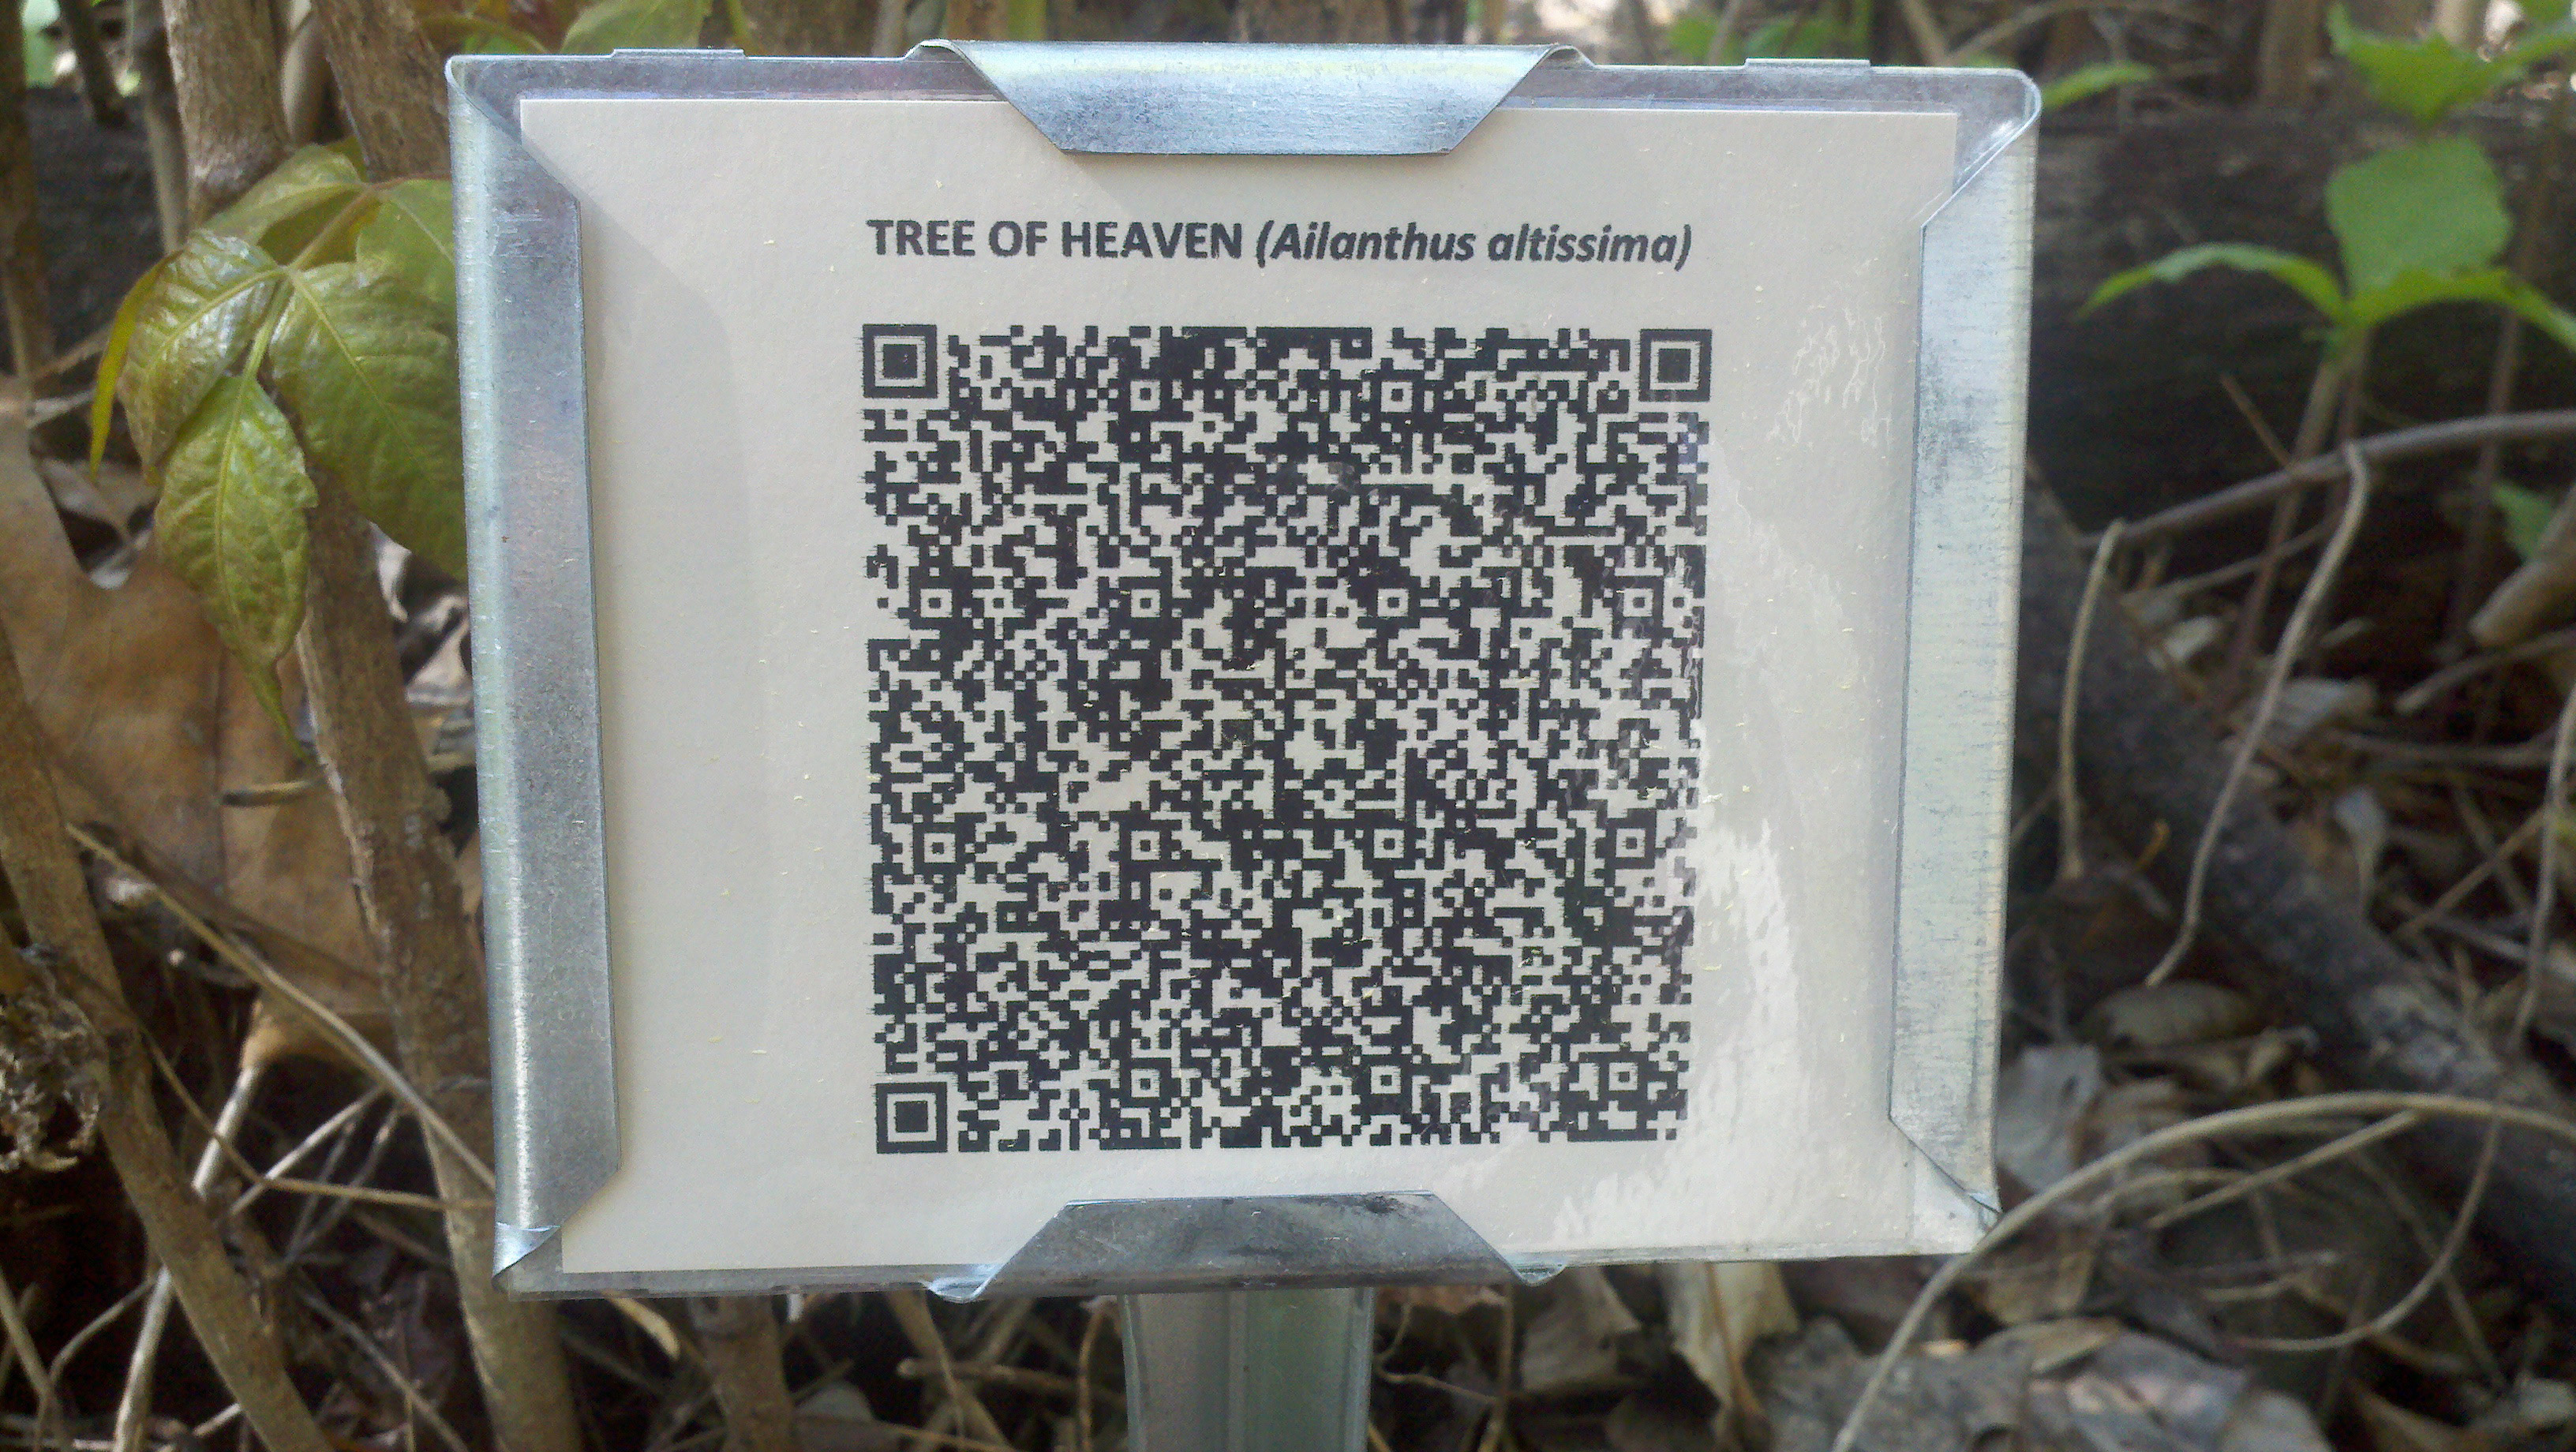 QR code sign for Tree of Heaven